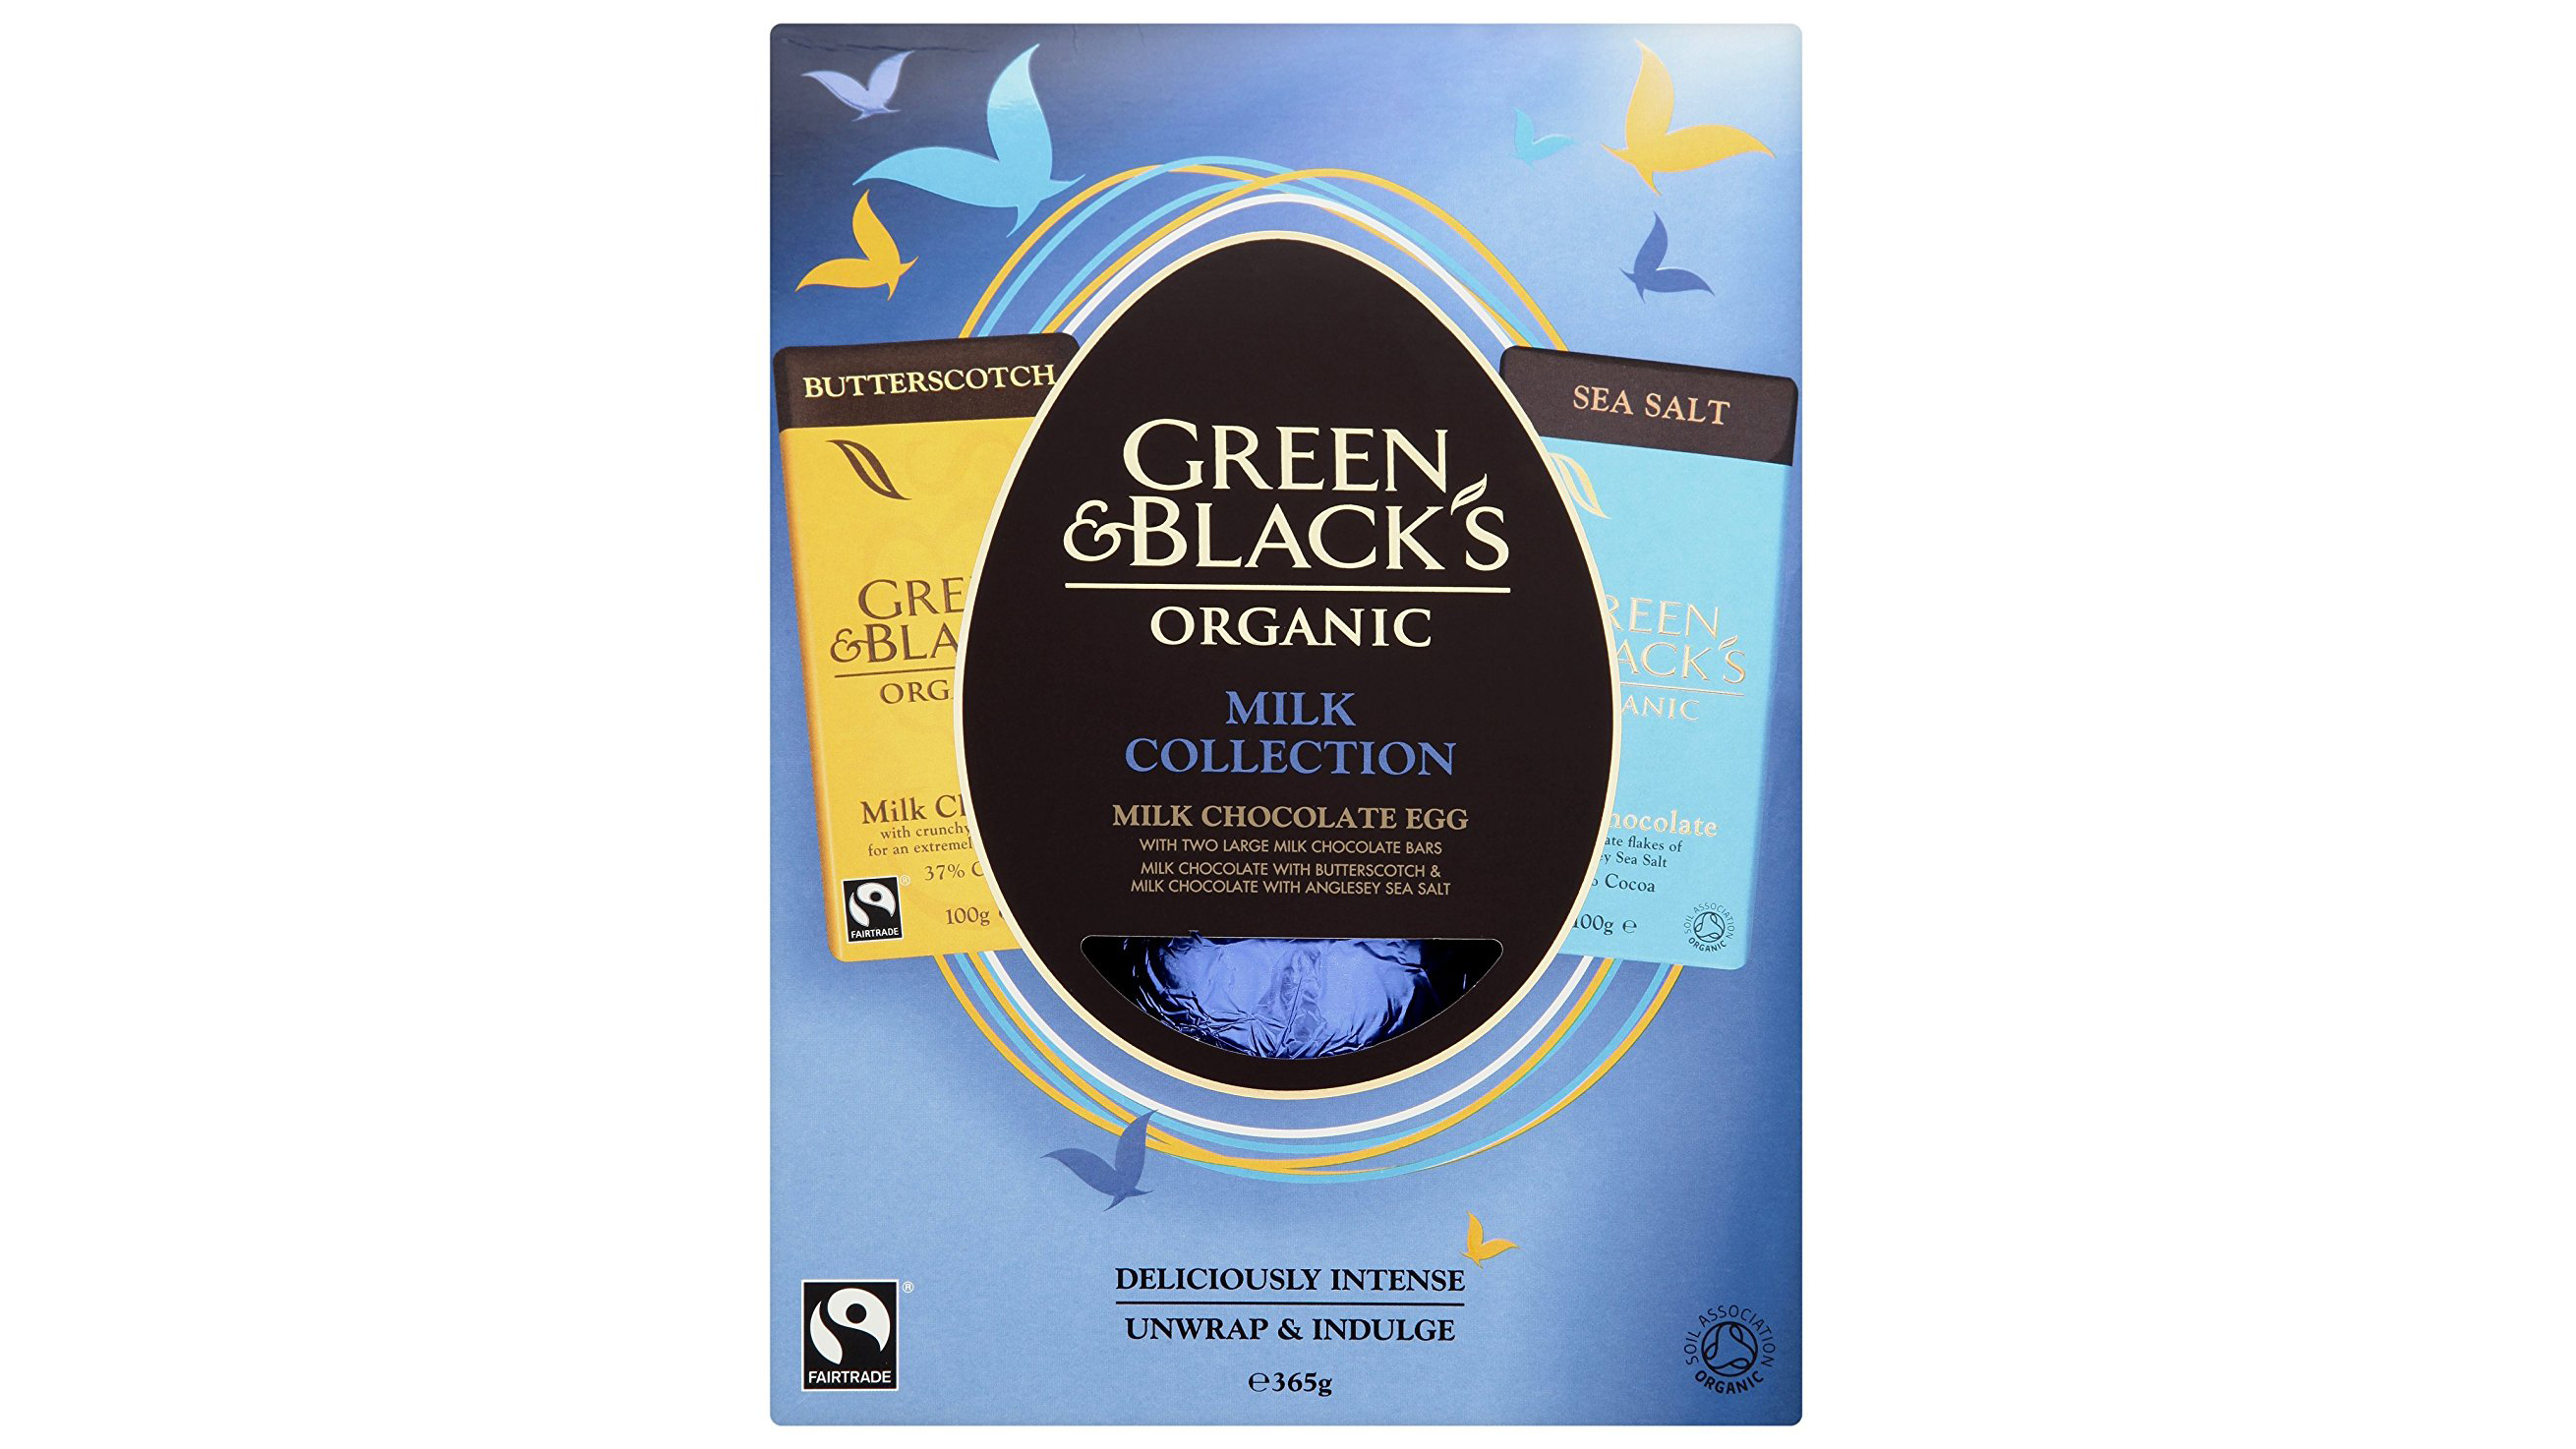 Best easter eggs 2018 the finest easter eggs for kids and adults bag four eggs for nearly the price of two in amazons amazing easter egg deal green blacks large milk chocolate egg box contains a scrumptious 365g negle Image collections